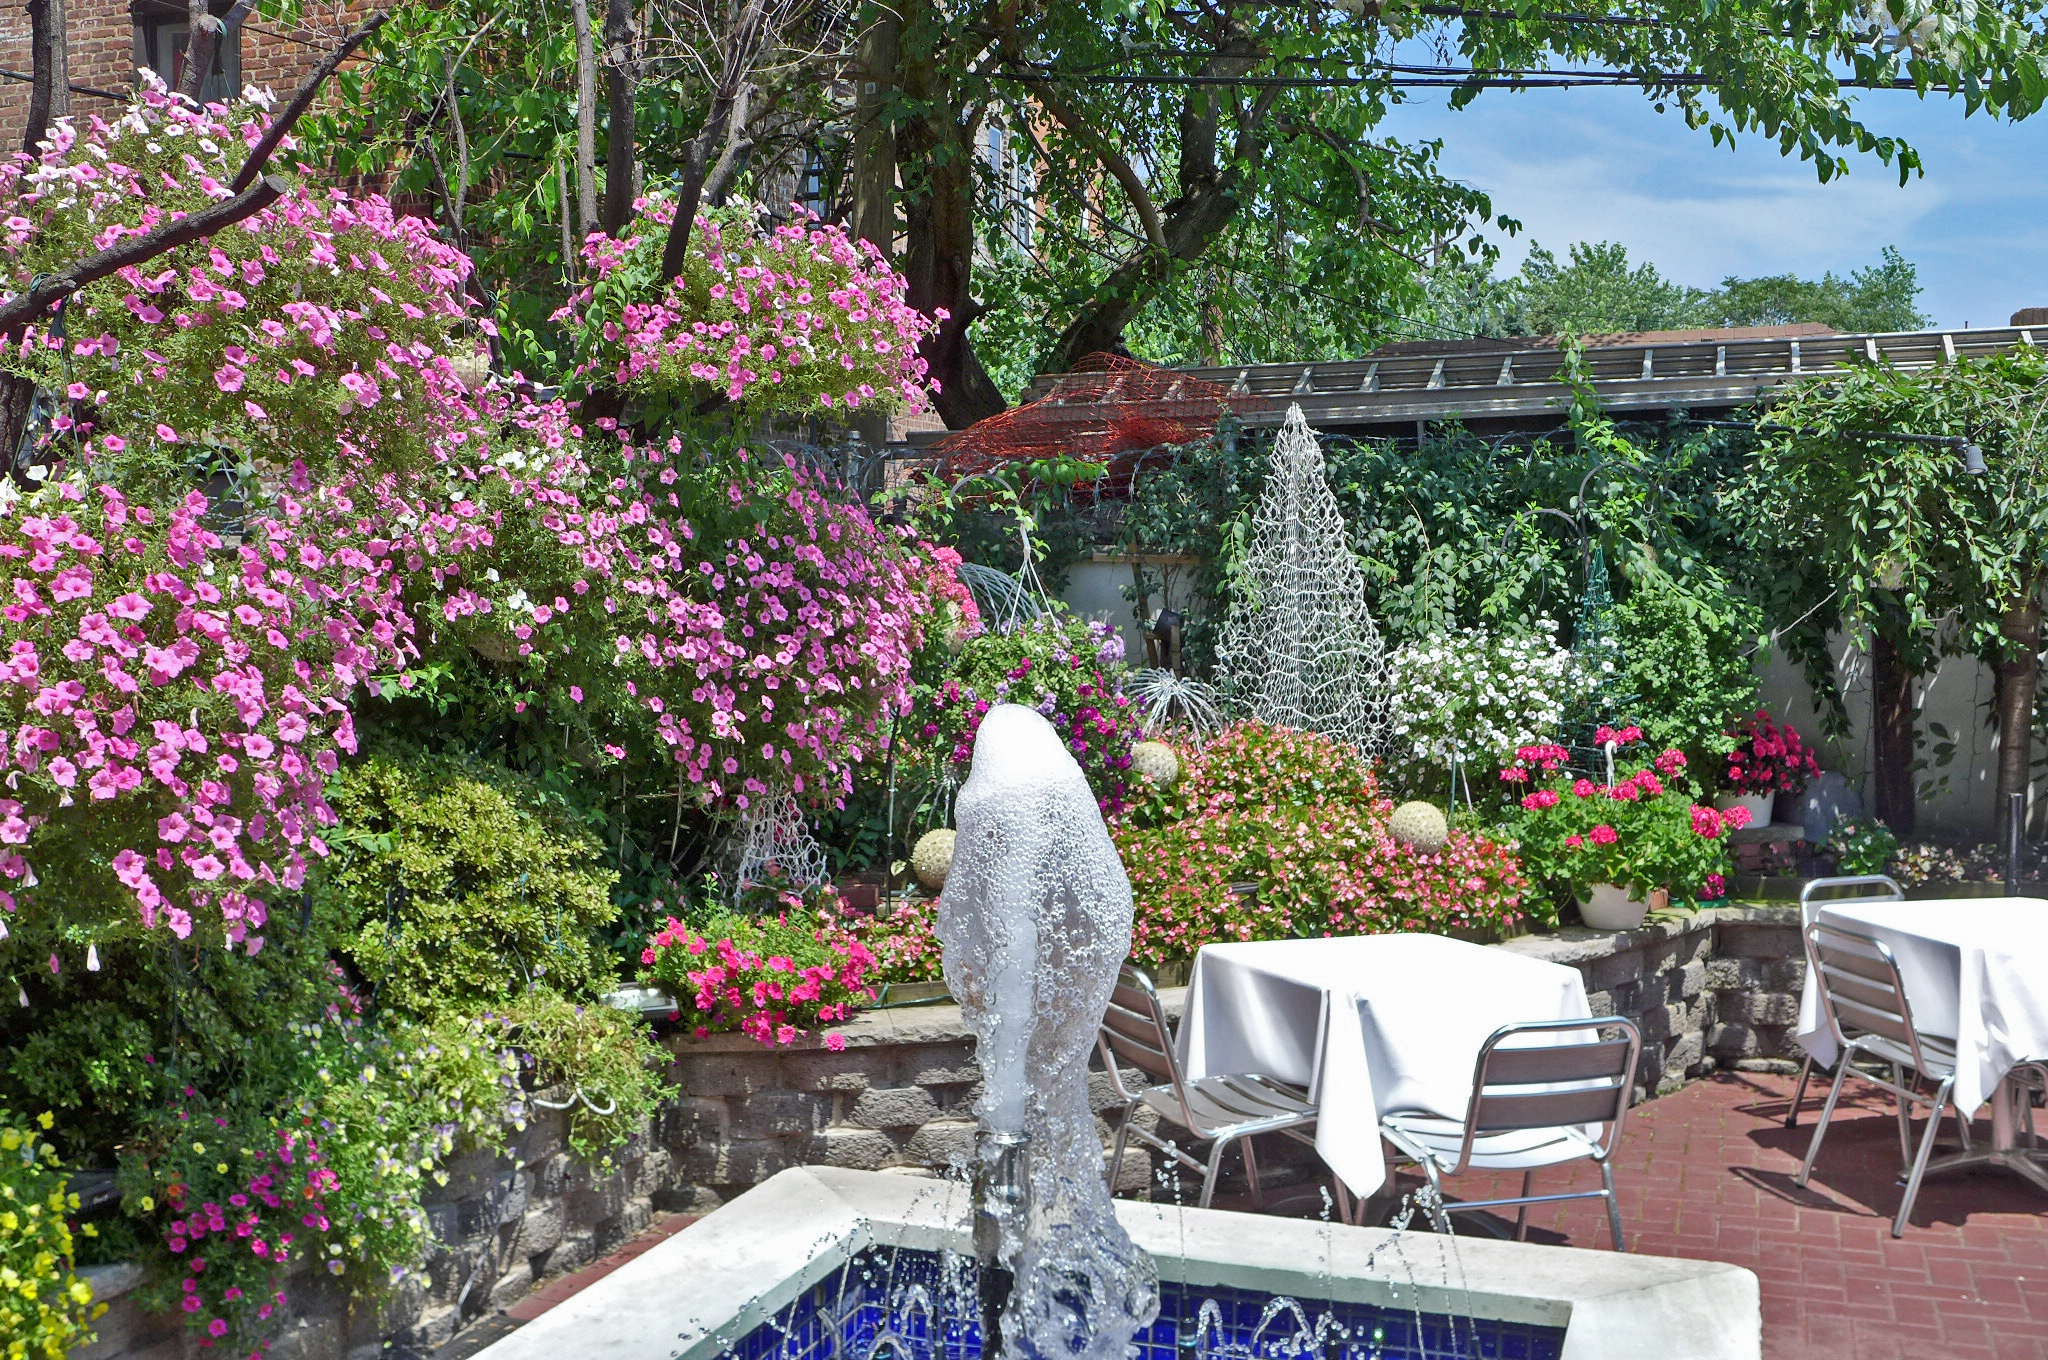 A fountain and flowers fill the back yard dining area.